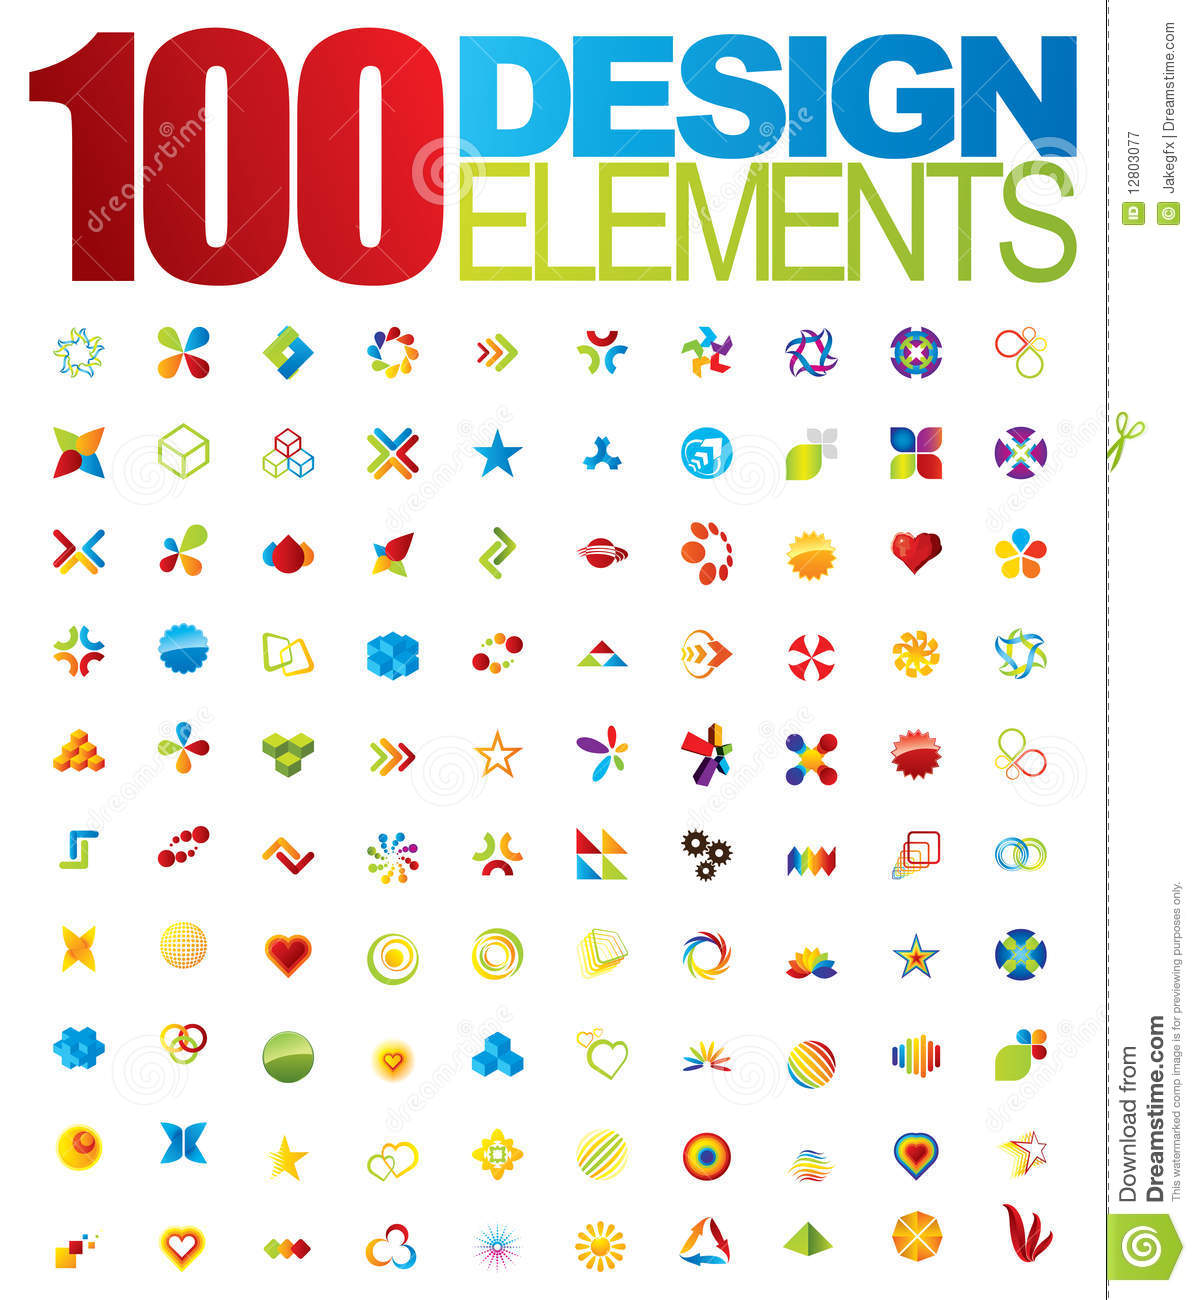 100 Vector Logo And Design Elements Royalty Free Stock Photography ...